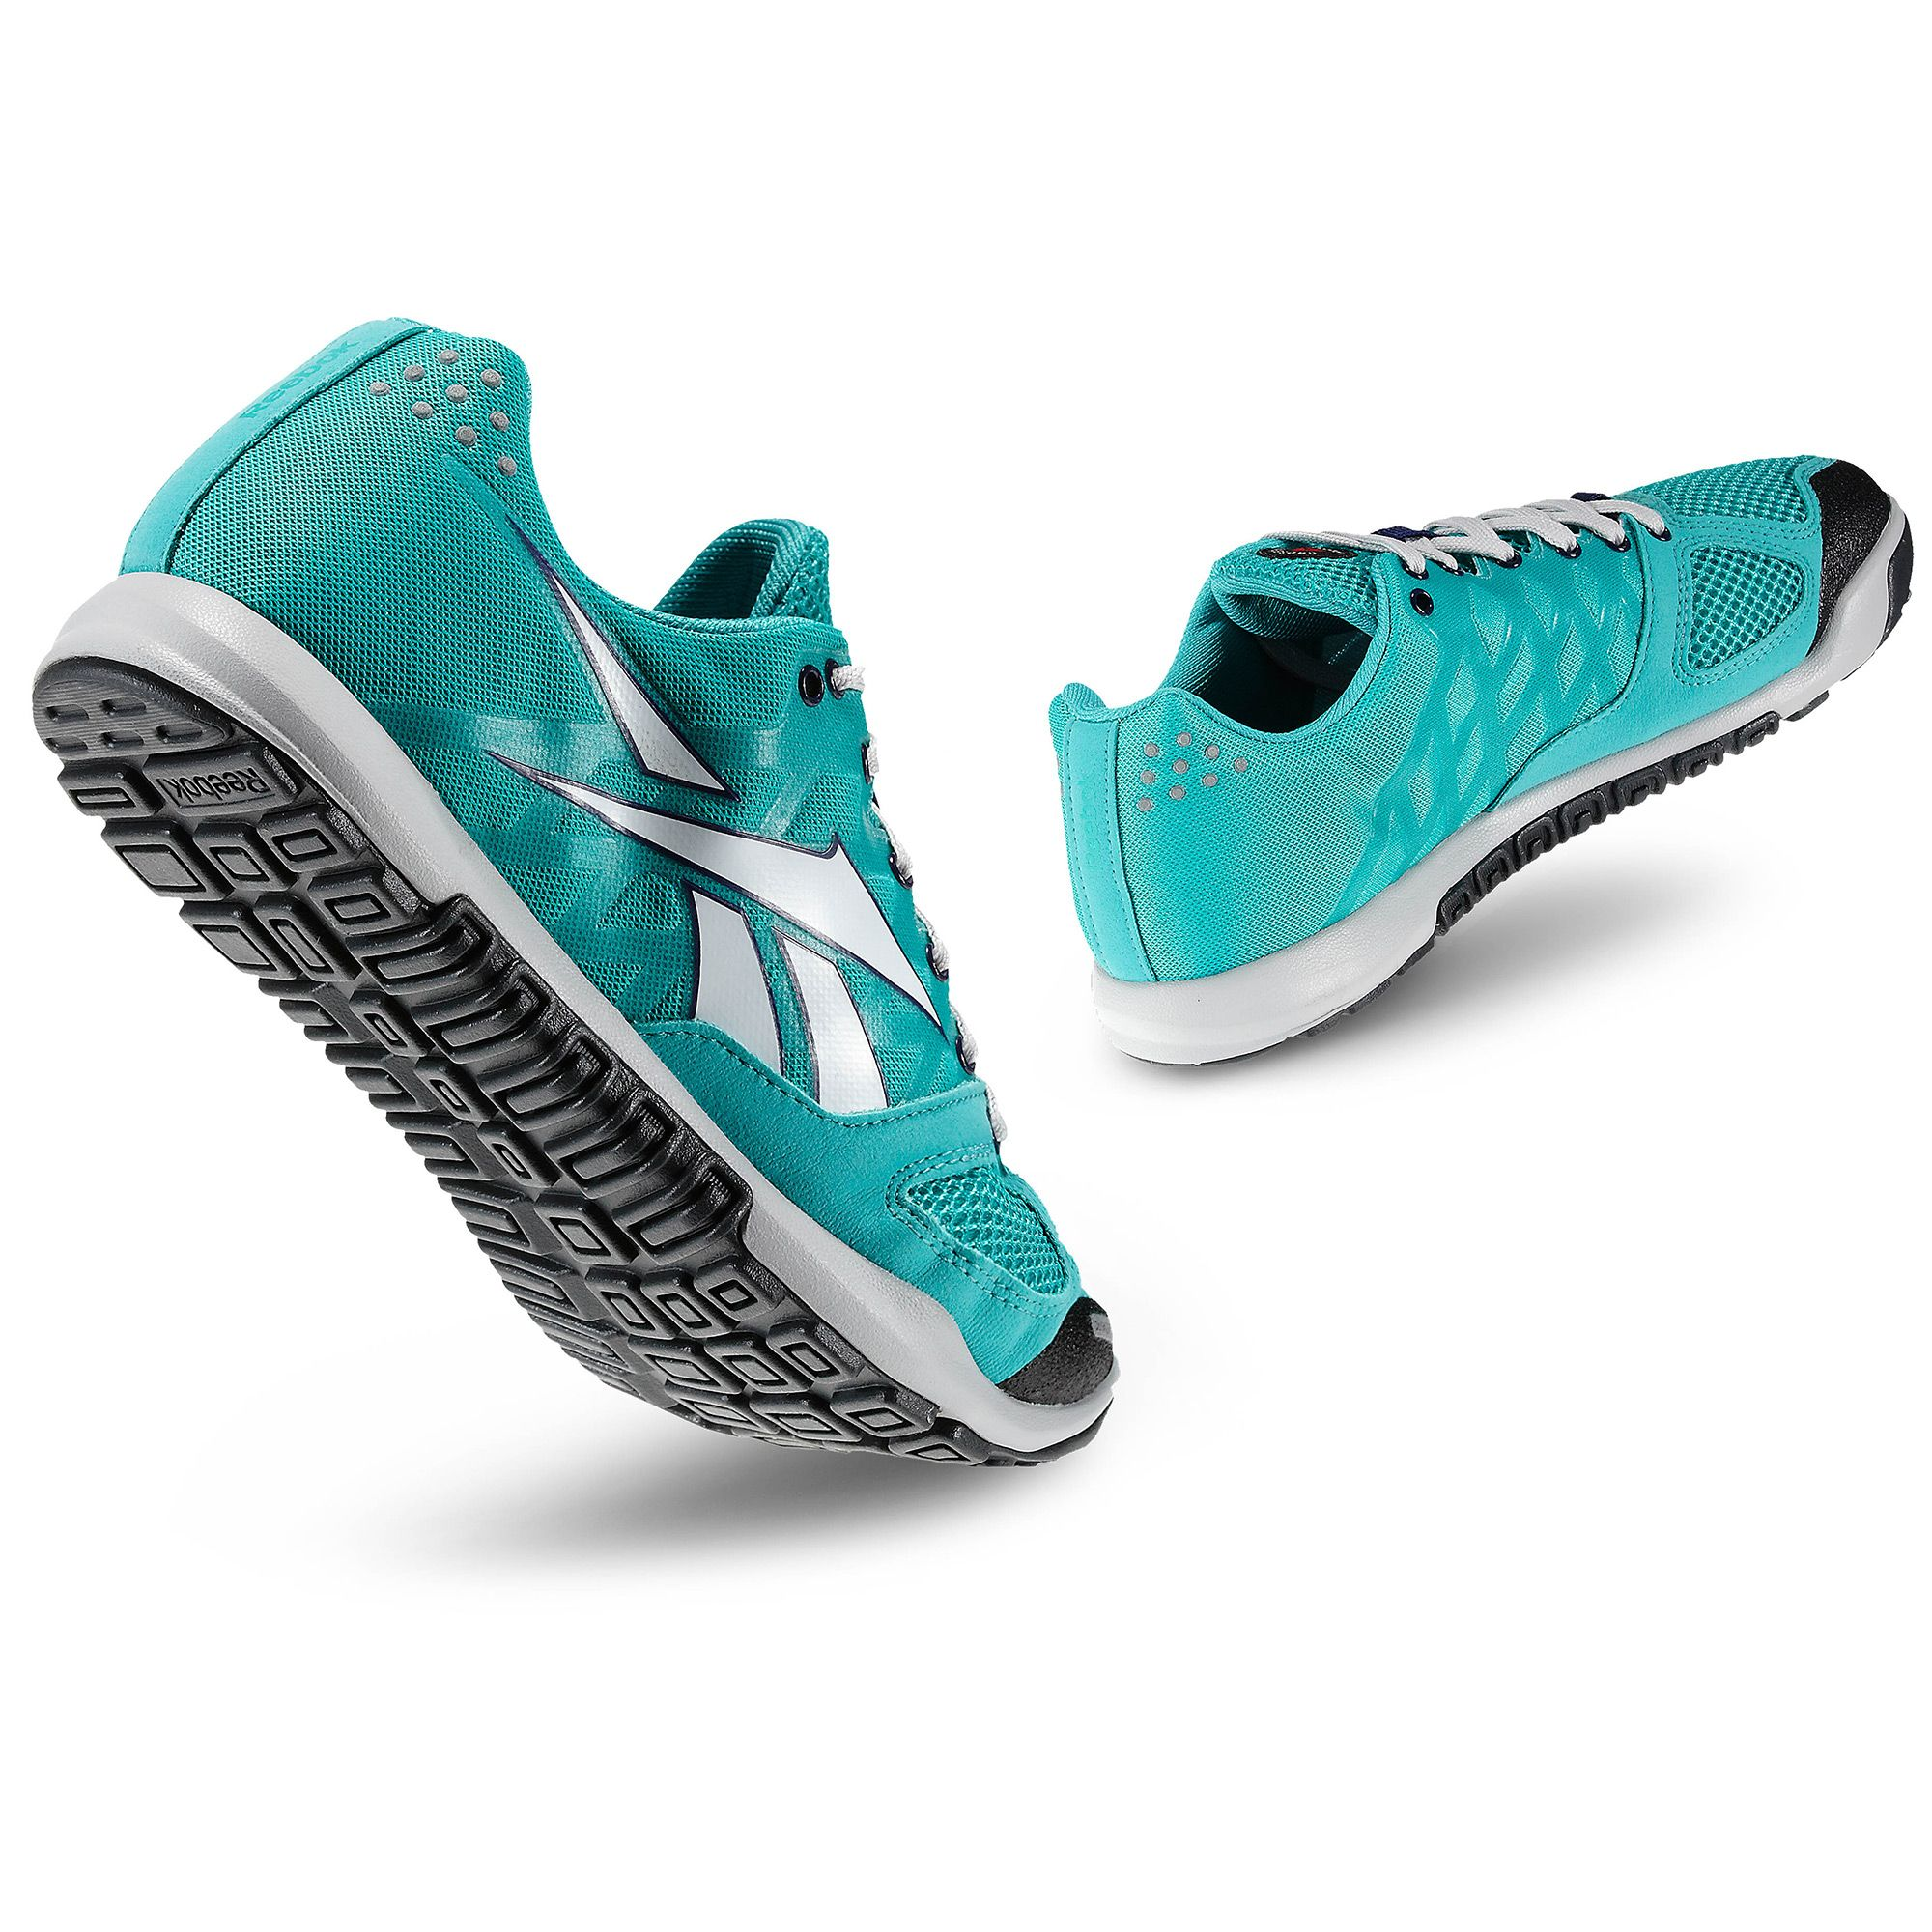 aafeeeba5088 Women s CrossFit Nano 2.0 - want but sold out in my size...  (